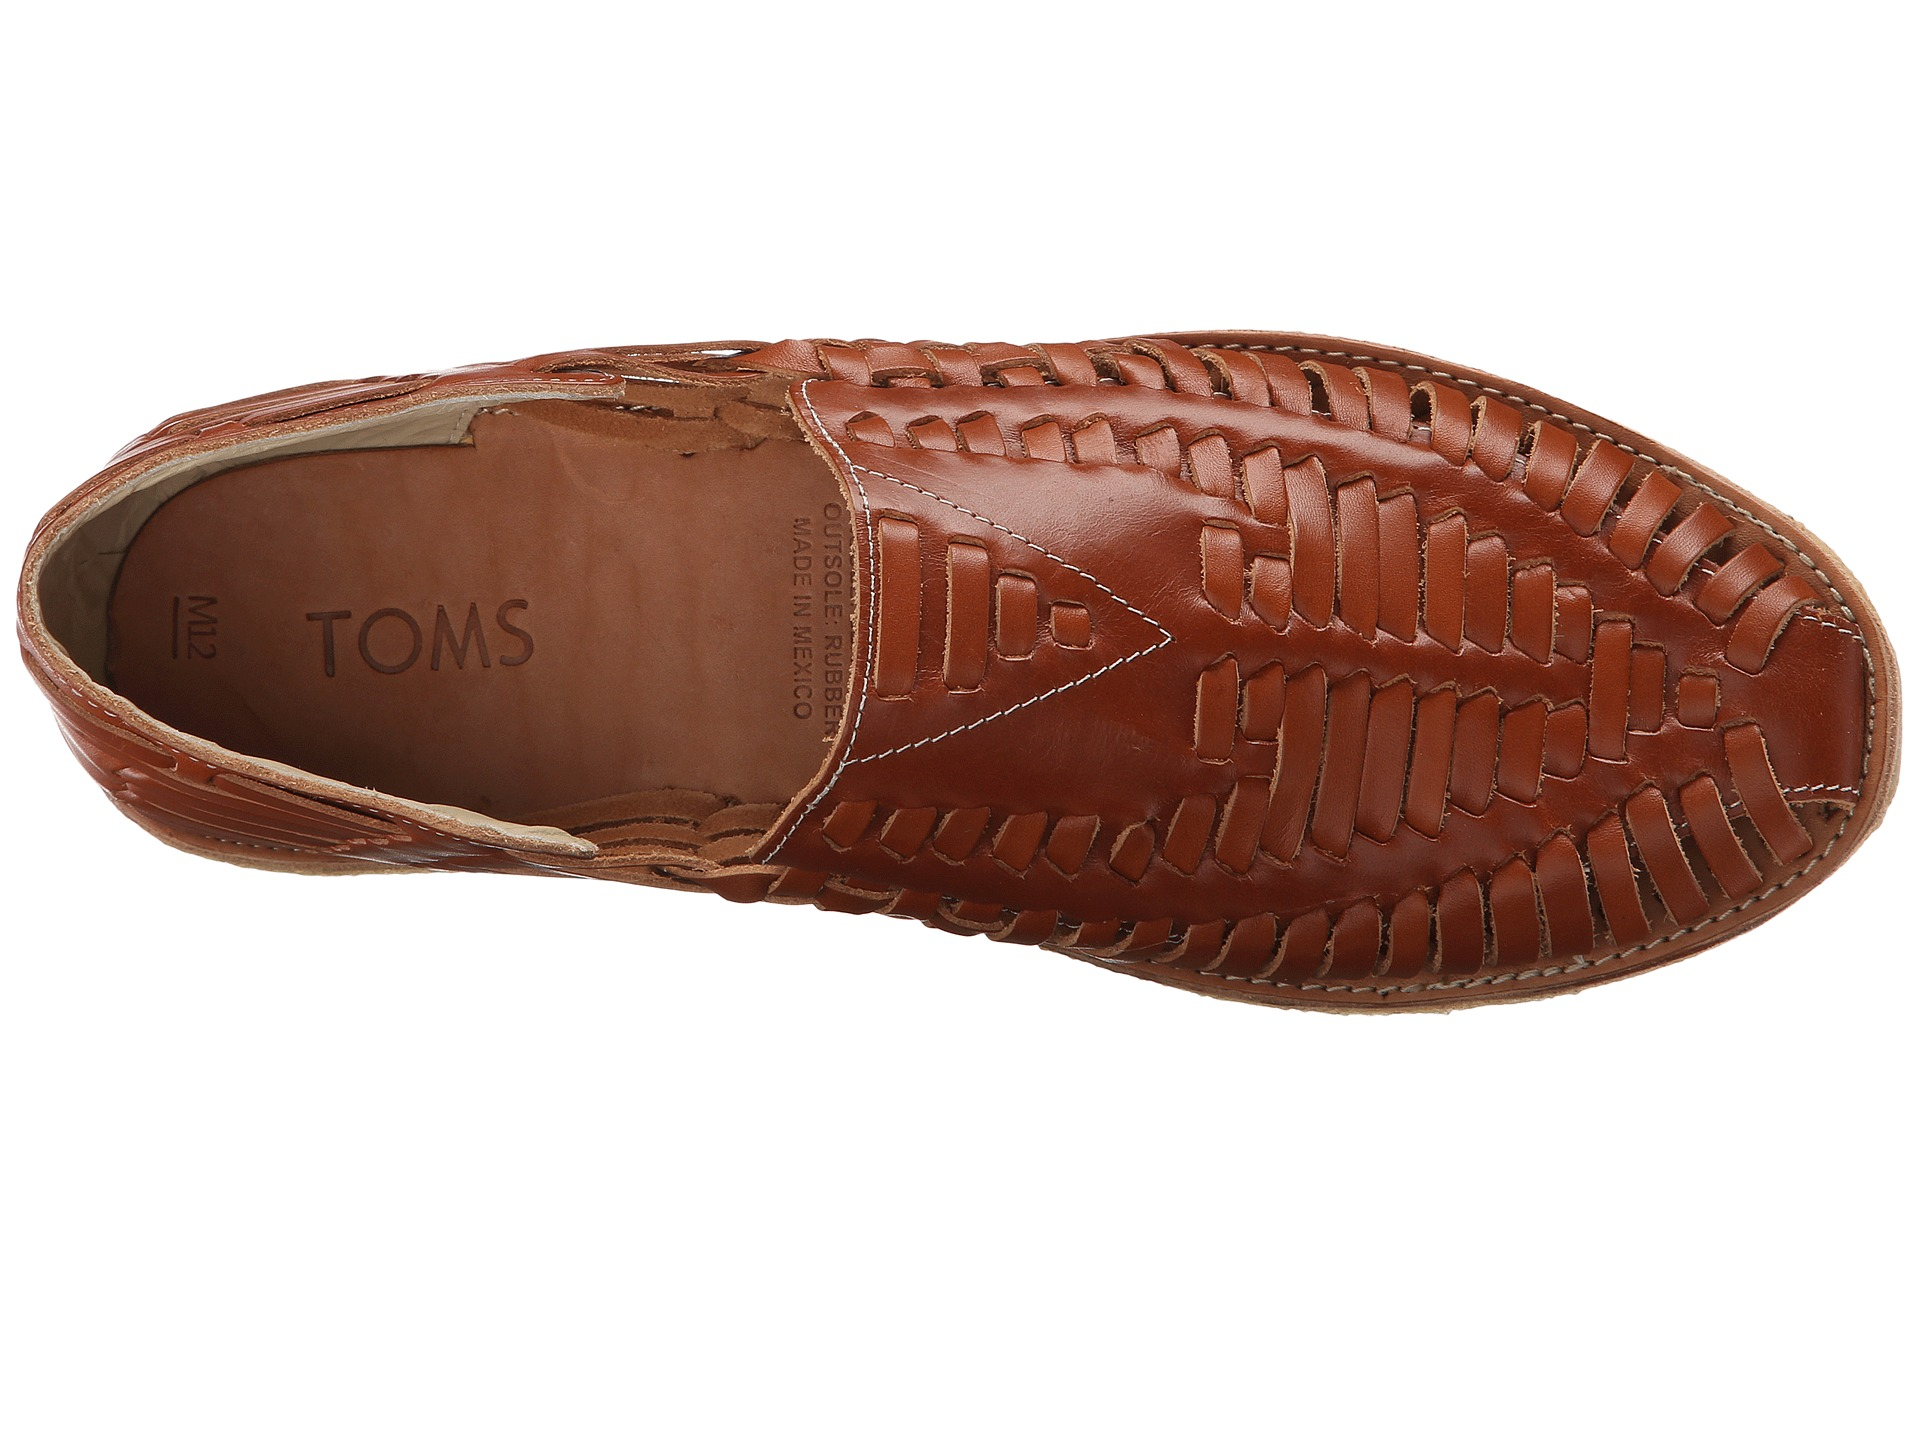 Toms Mens Shoes Zappos